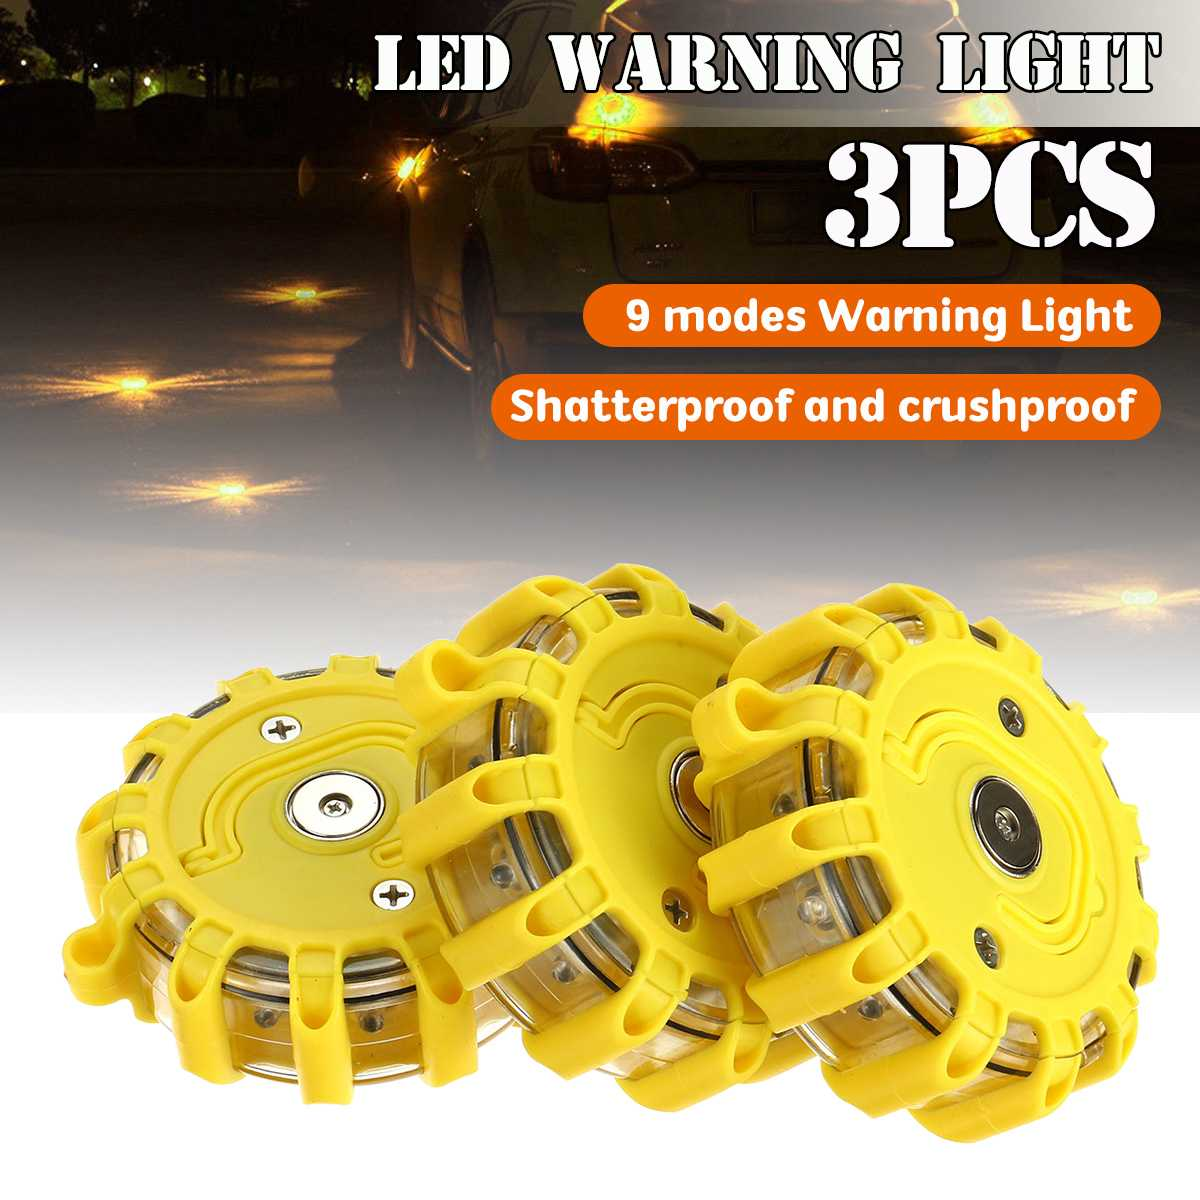 Punctual 1/3pcs 12x Led Emergency Safety Flare Yellow Road Flare Magnet Flashing Warning Night Lights Roadside Disc Beacon For Car Buy One Give One